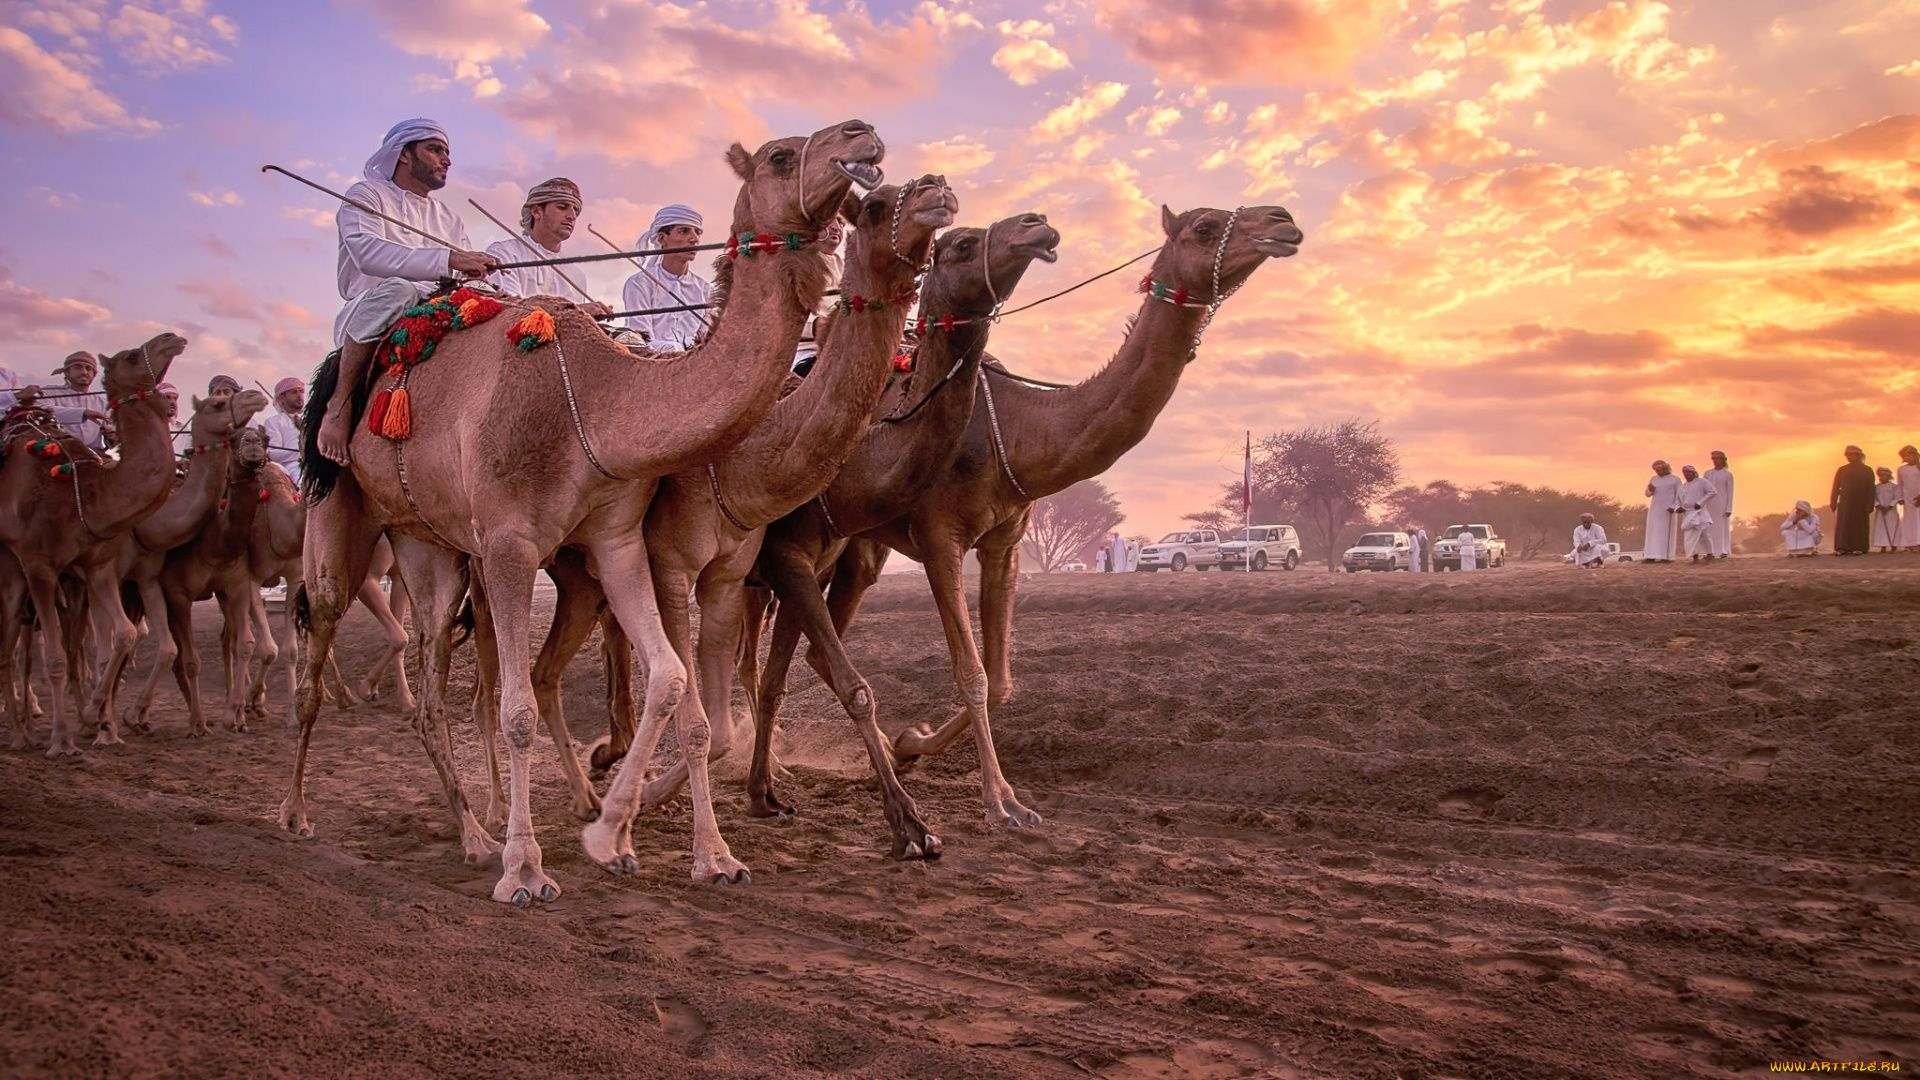 Wallpapers Camels